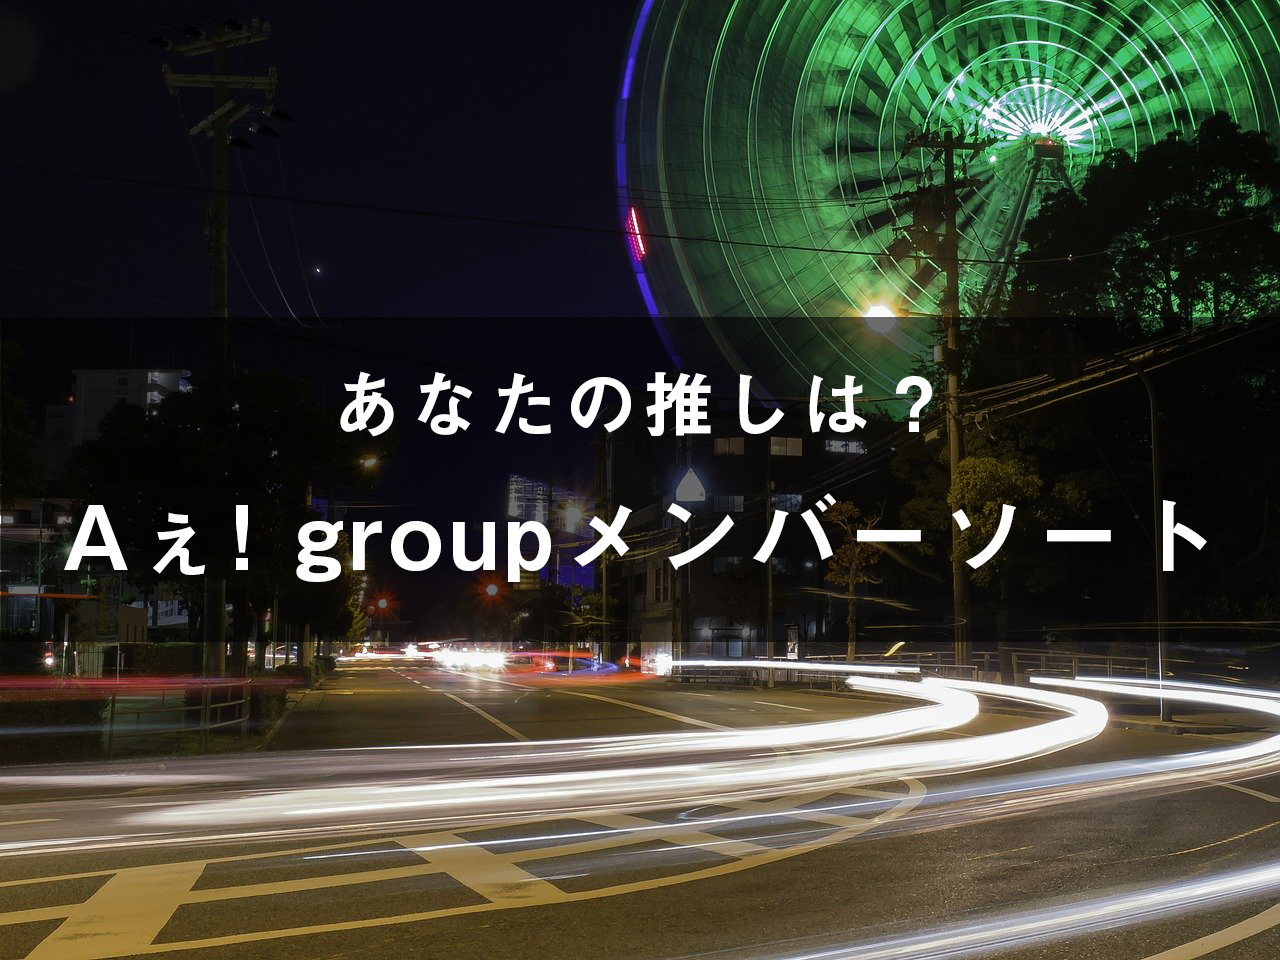 「Aぇ! group」のメンバーソート(画像付き)